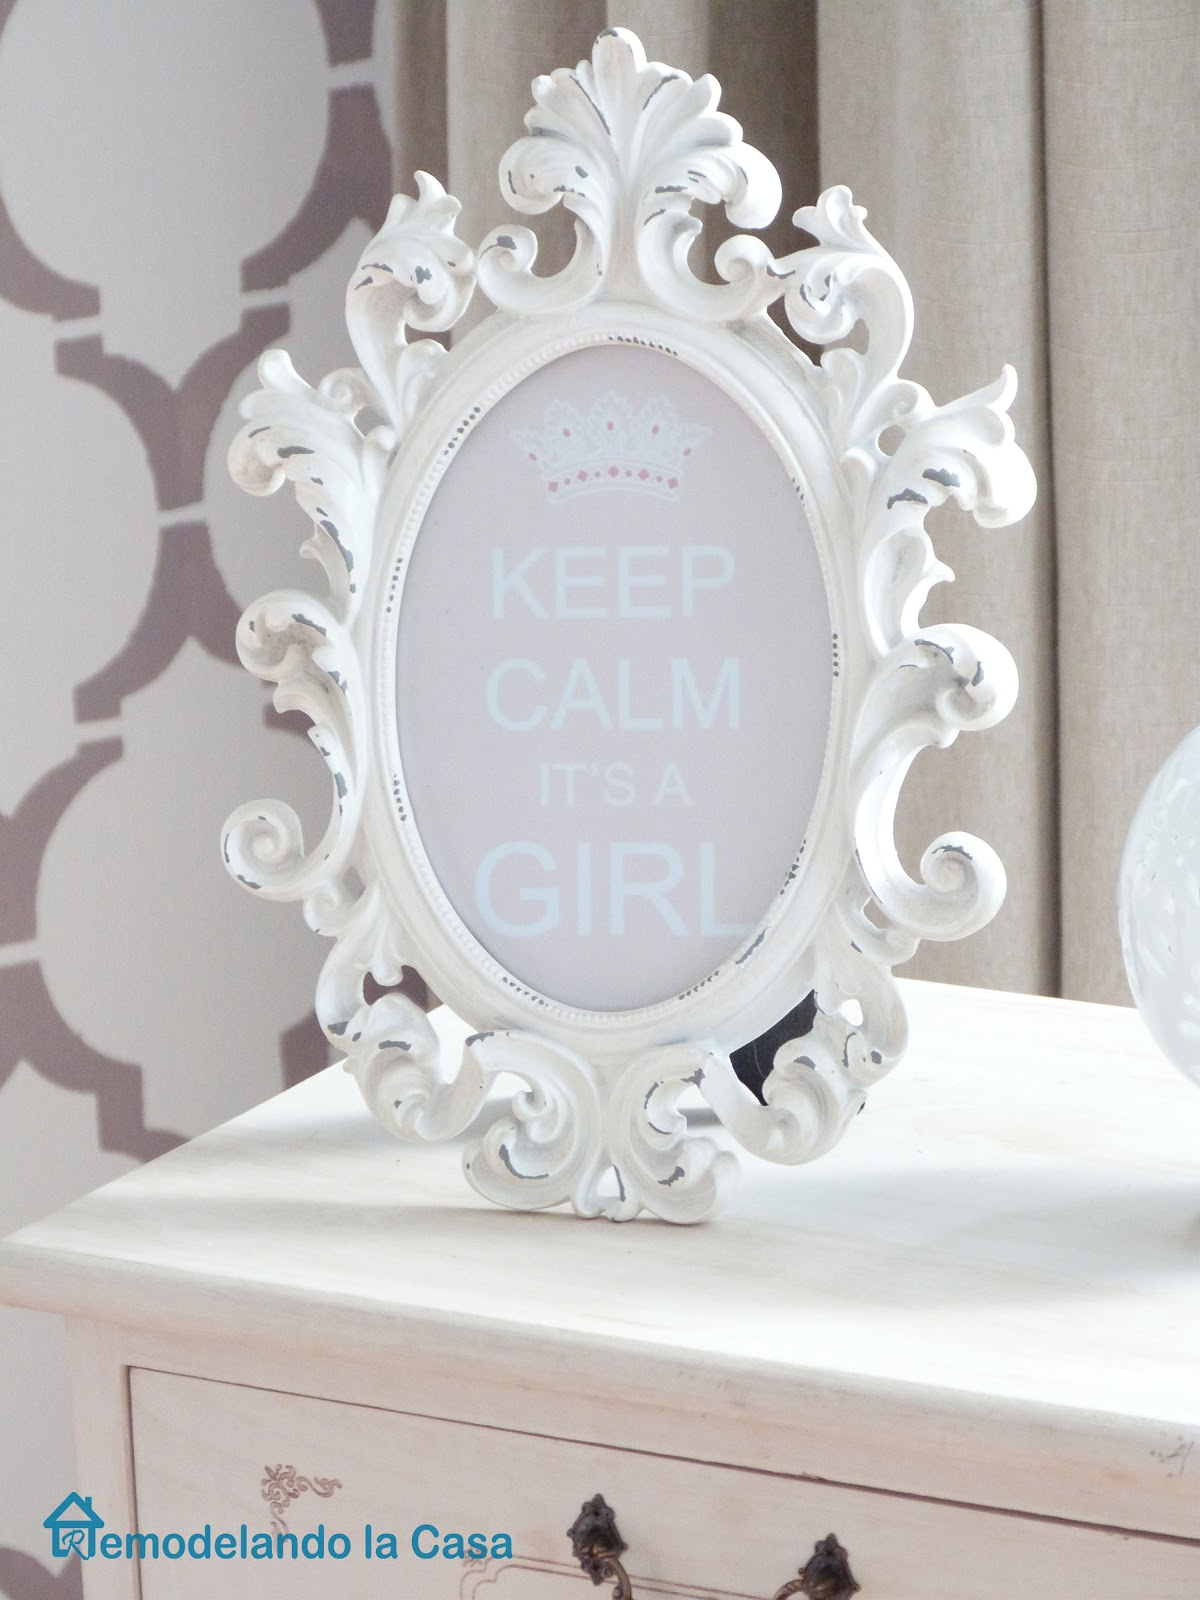 Keep calm it's a girl frame for baby girl nursery